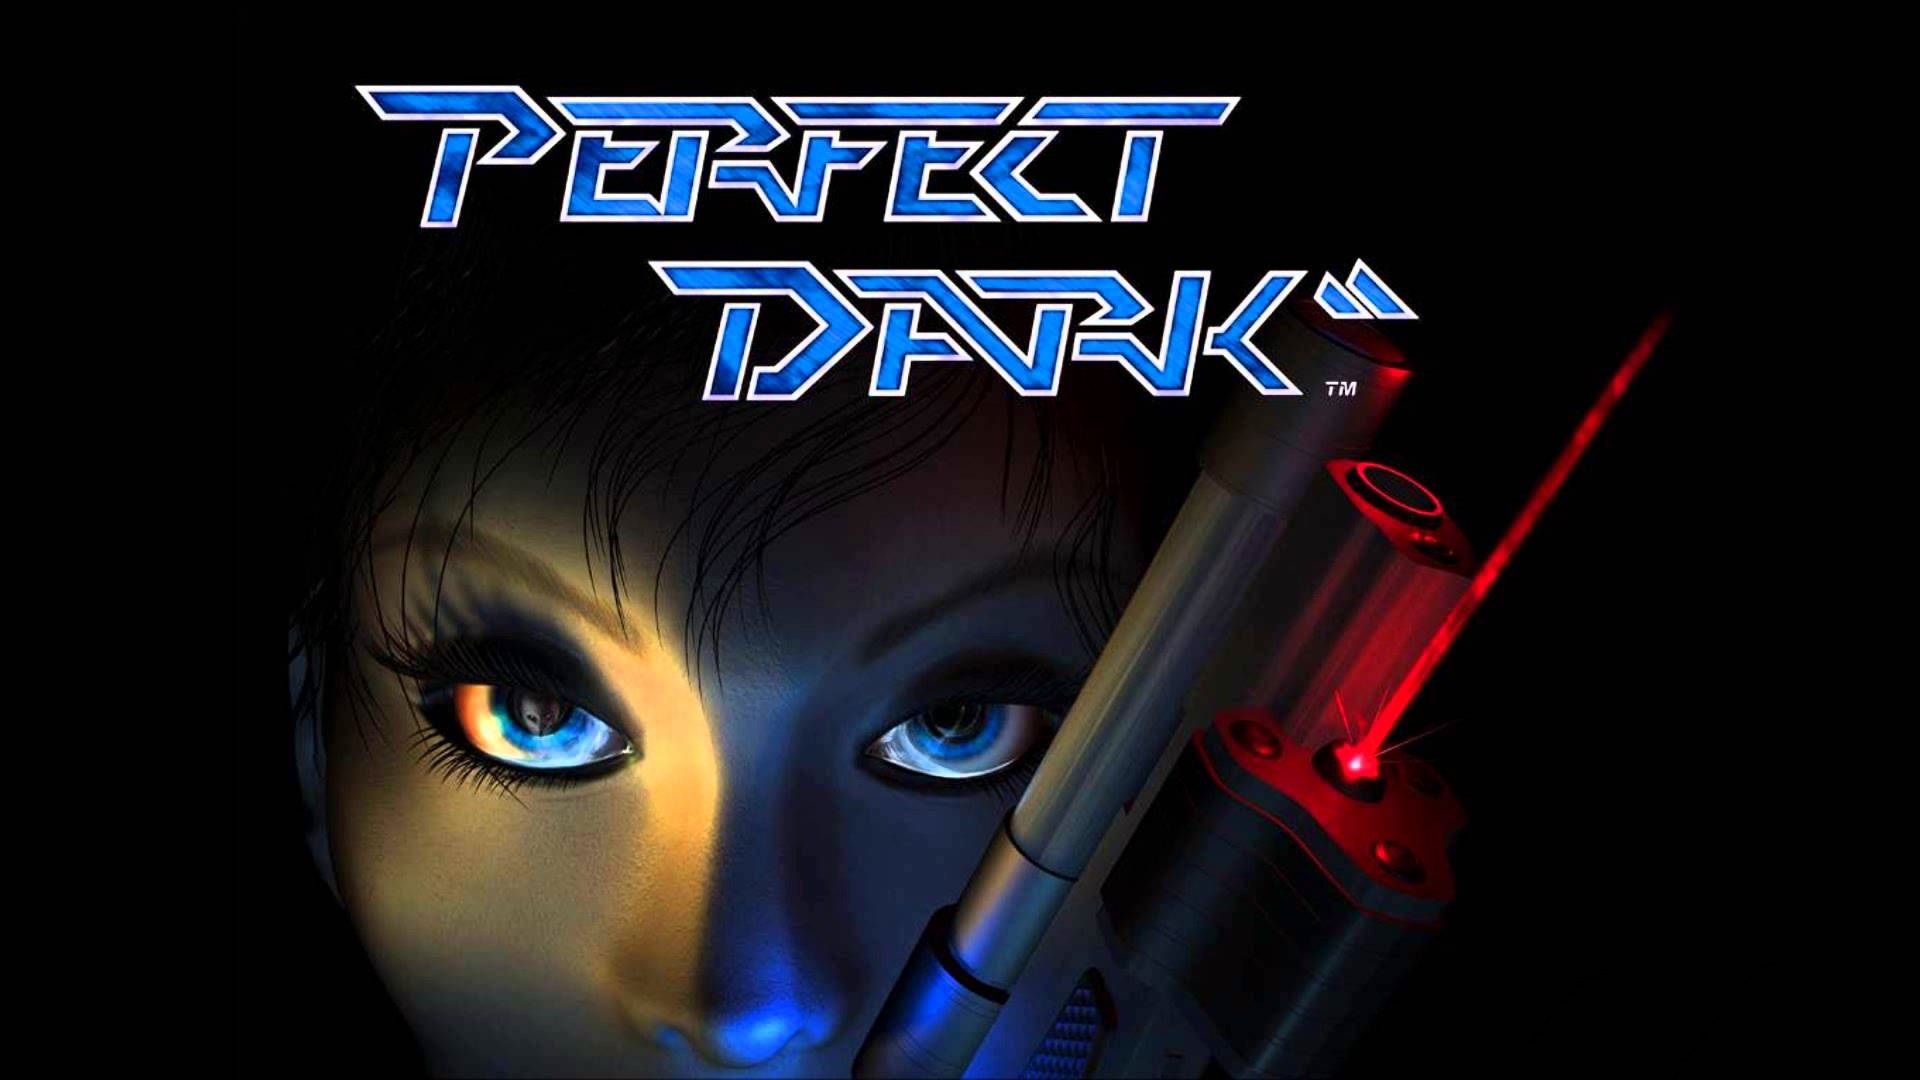 perfect dark wallpapers definition wallsdesk backgrounds pause